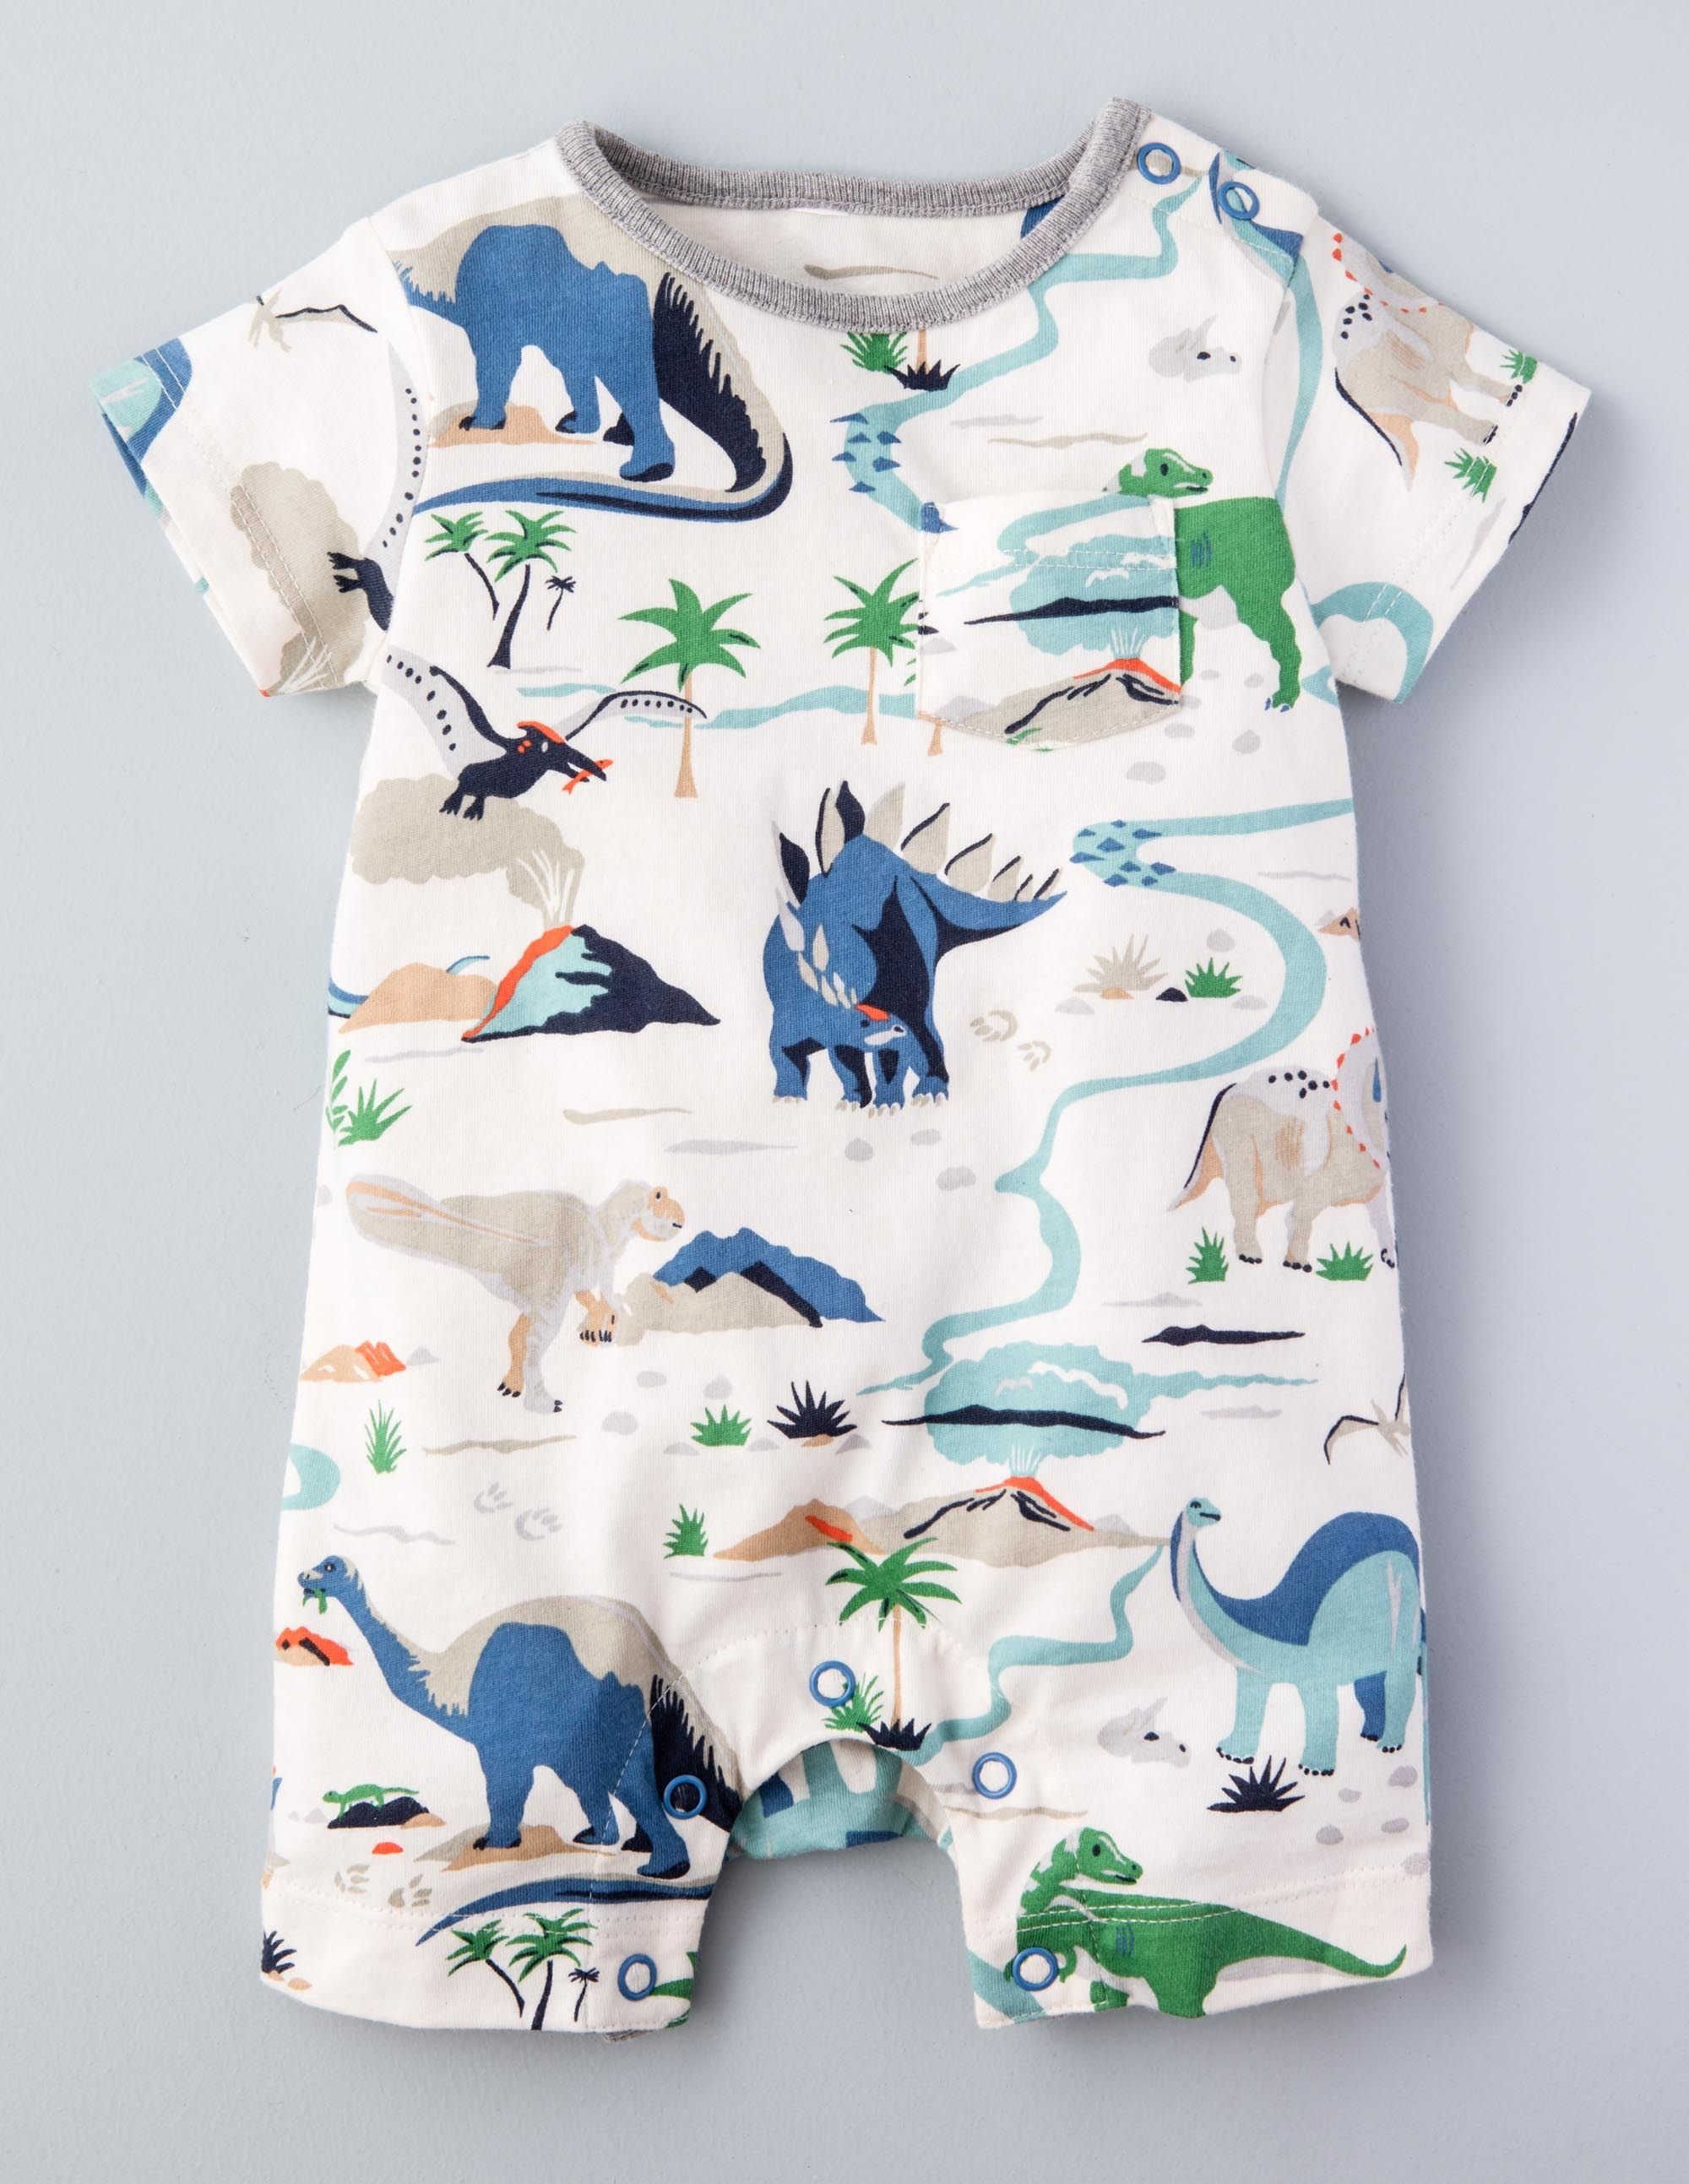 Shop Zazzle's cute selection of Dinosaur toddler clothes. Spoil your little tot with thousands of adorable styles to choose from!